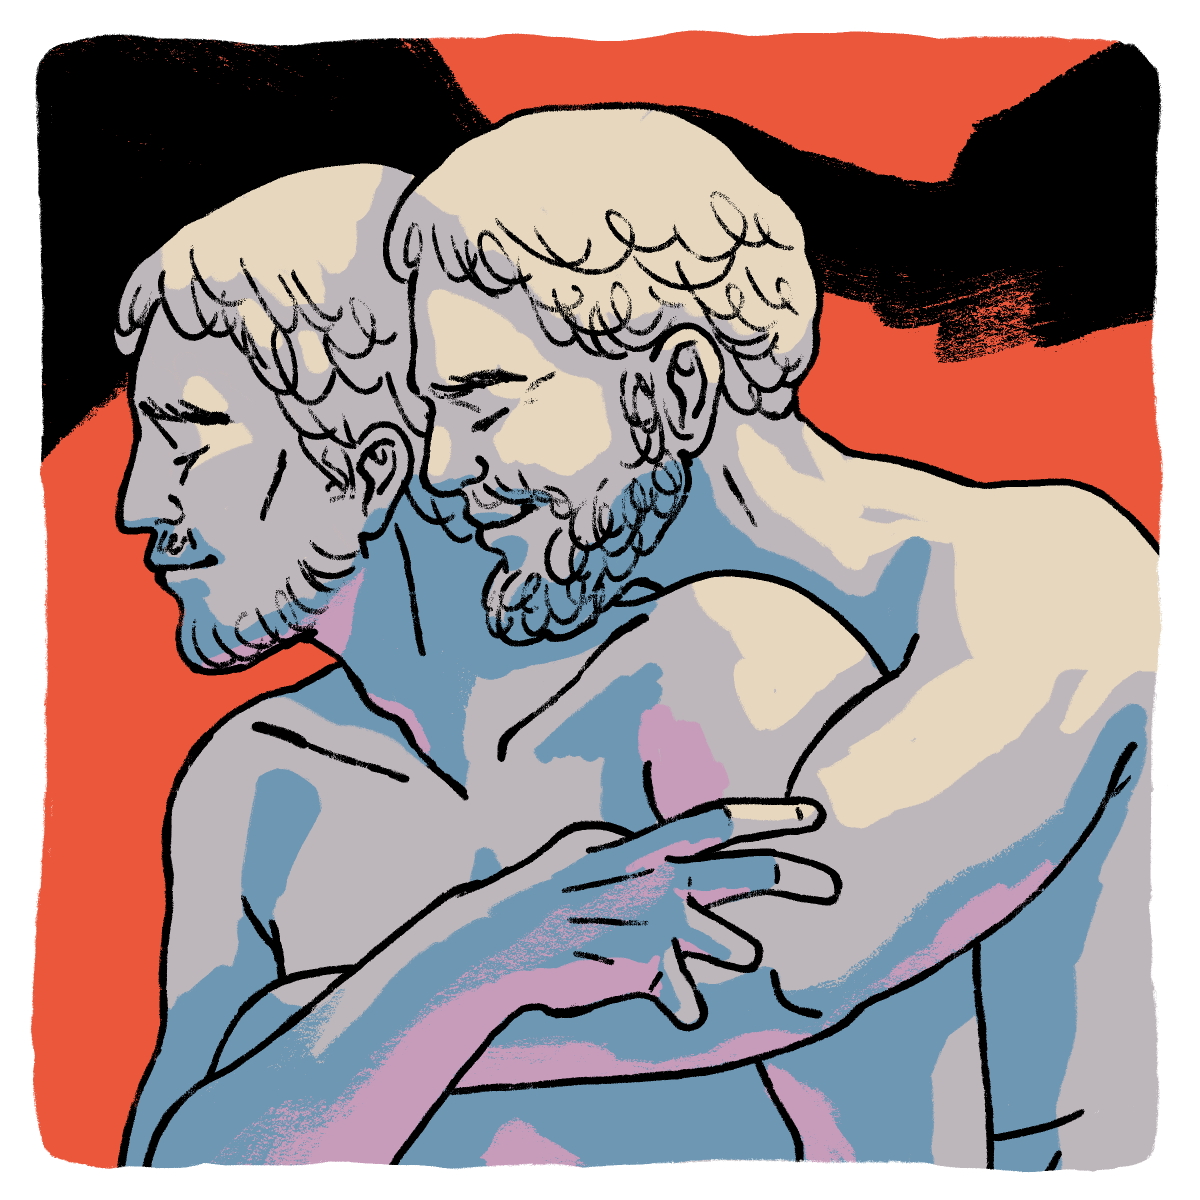 Two statues of nude Greek men embracing one another